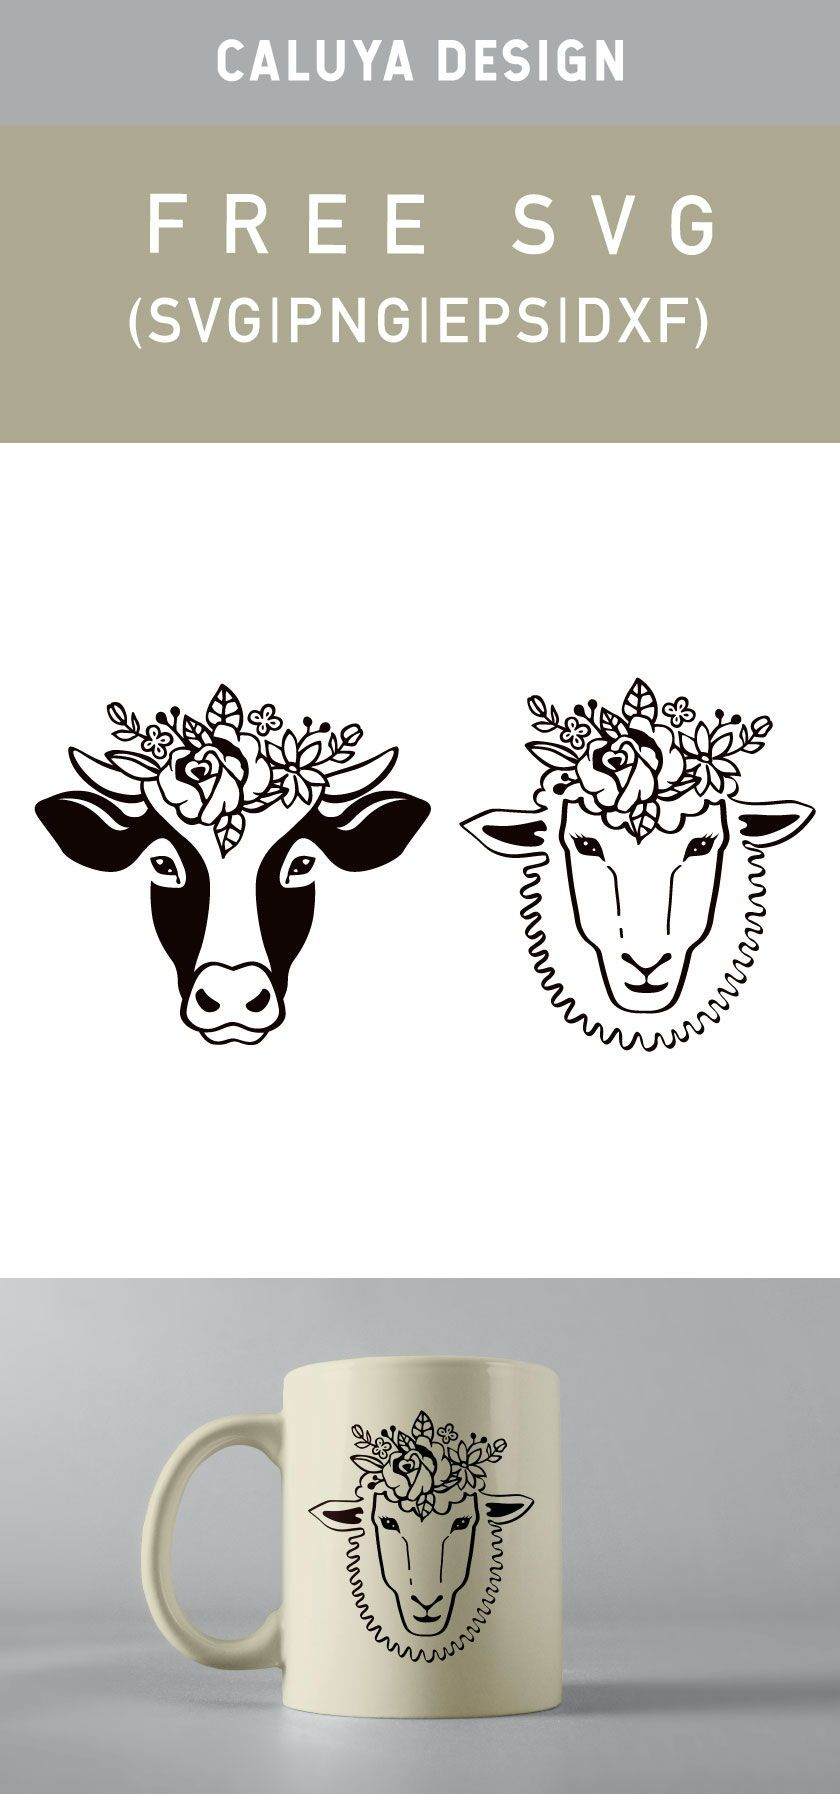 Free Spring Farm Animals SVG, PNG, EPS & DXF by Caluya Design